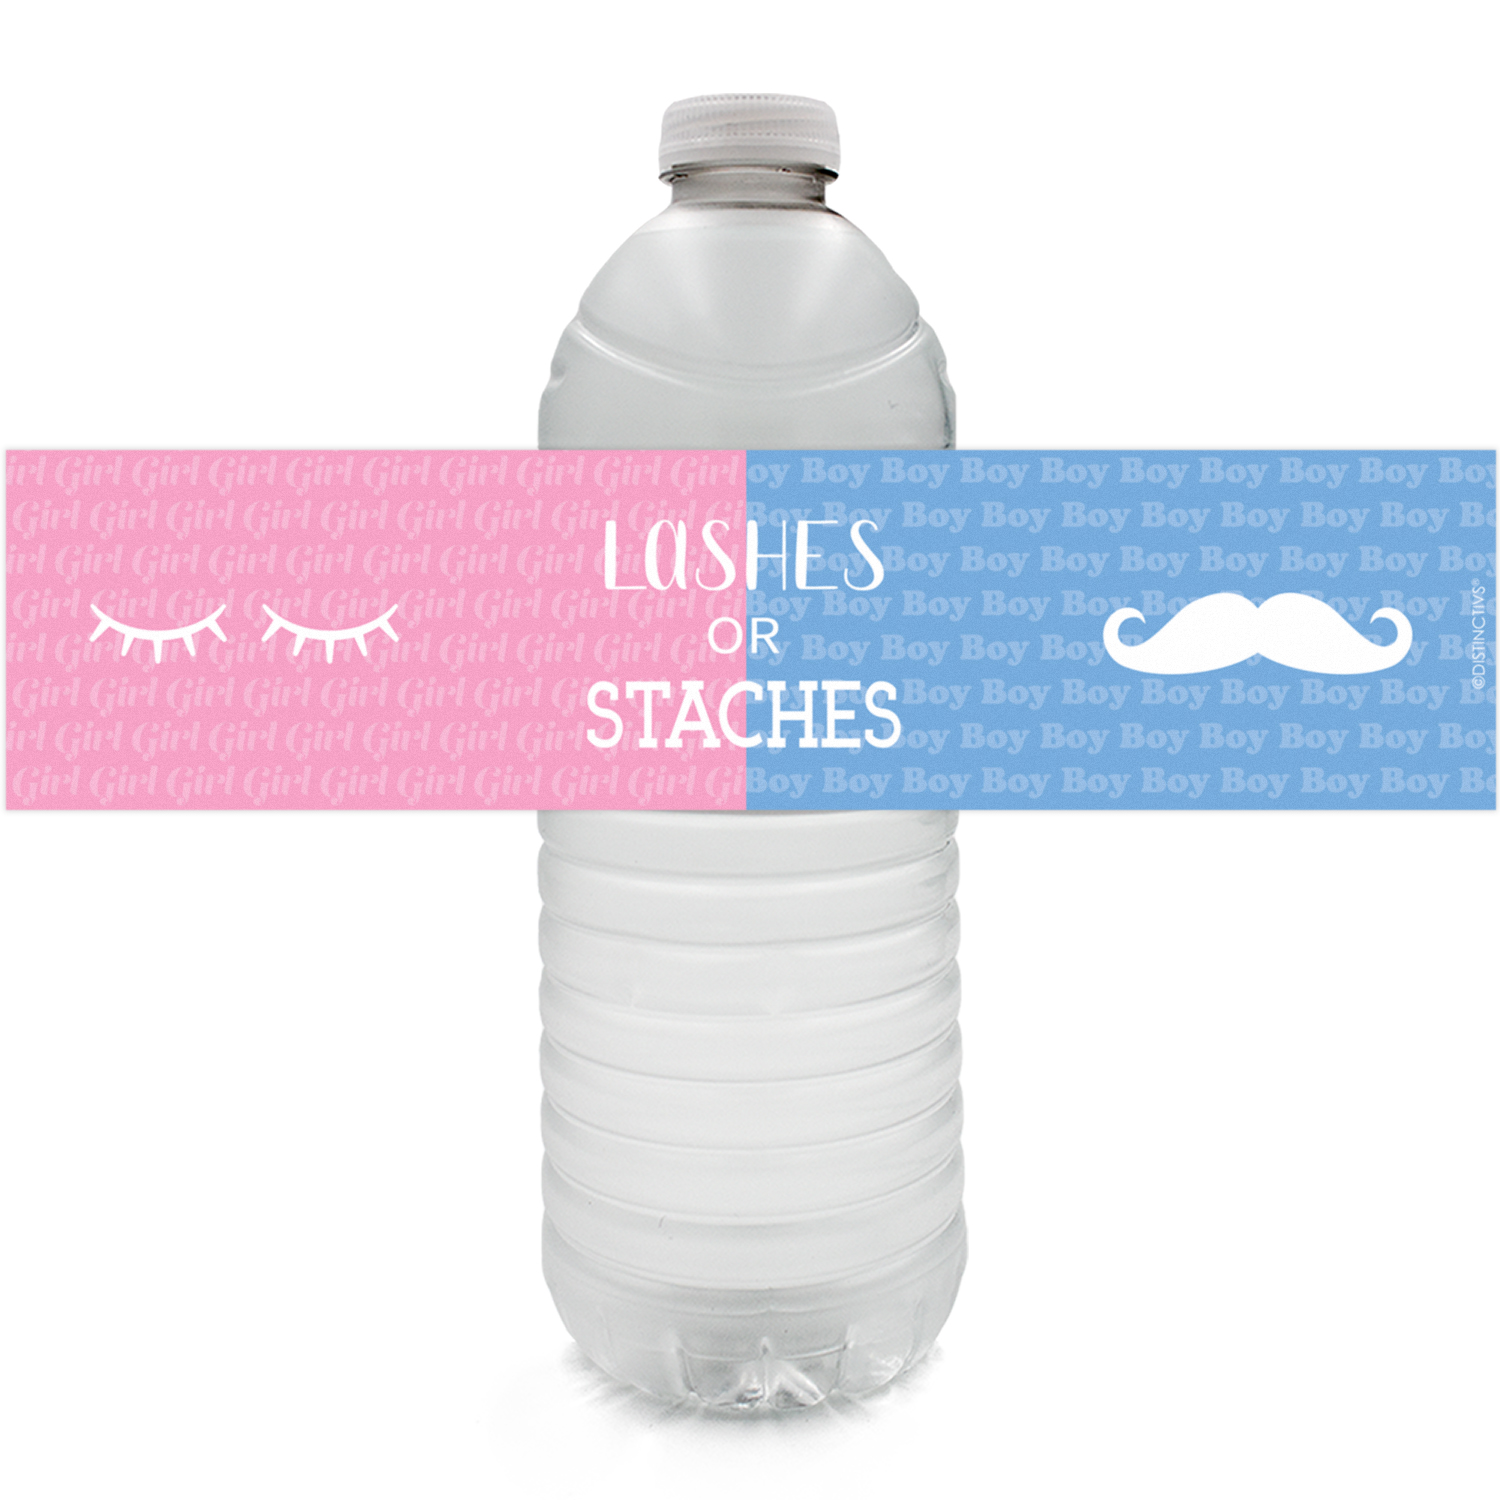 Gender Reveal Water Bottle Stickers 24ct | Boy or Girl | Lashes or Staches Party Favor Decoration Labels